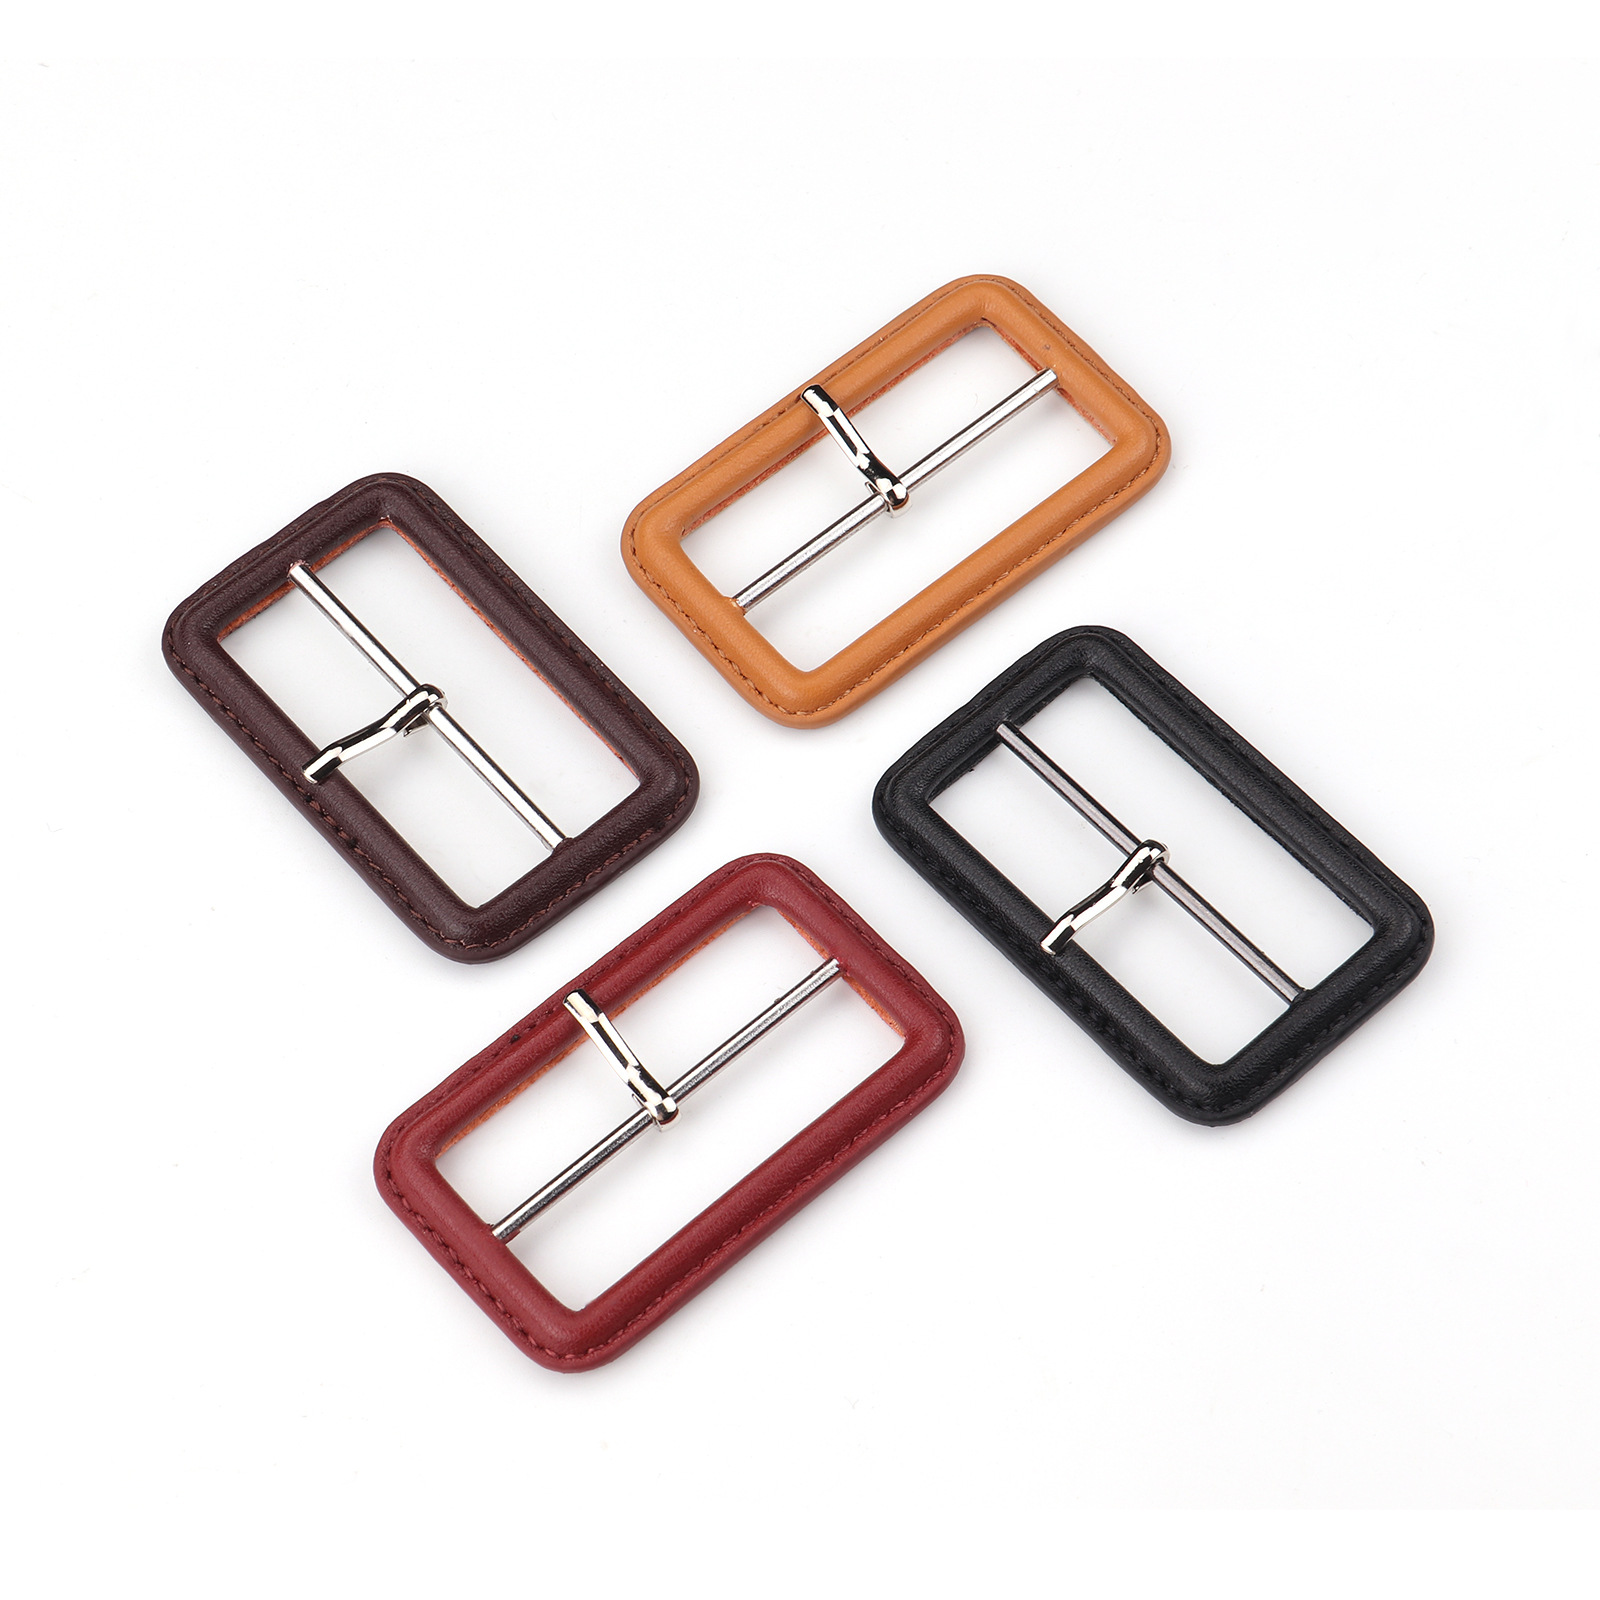 Wholesale 2021 New Decorative Colorful Leather Covered Buckle Belt Buckle for Garment